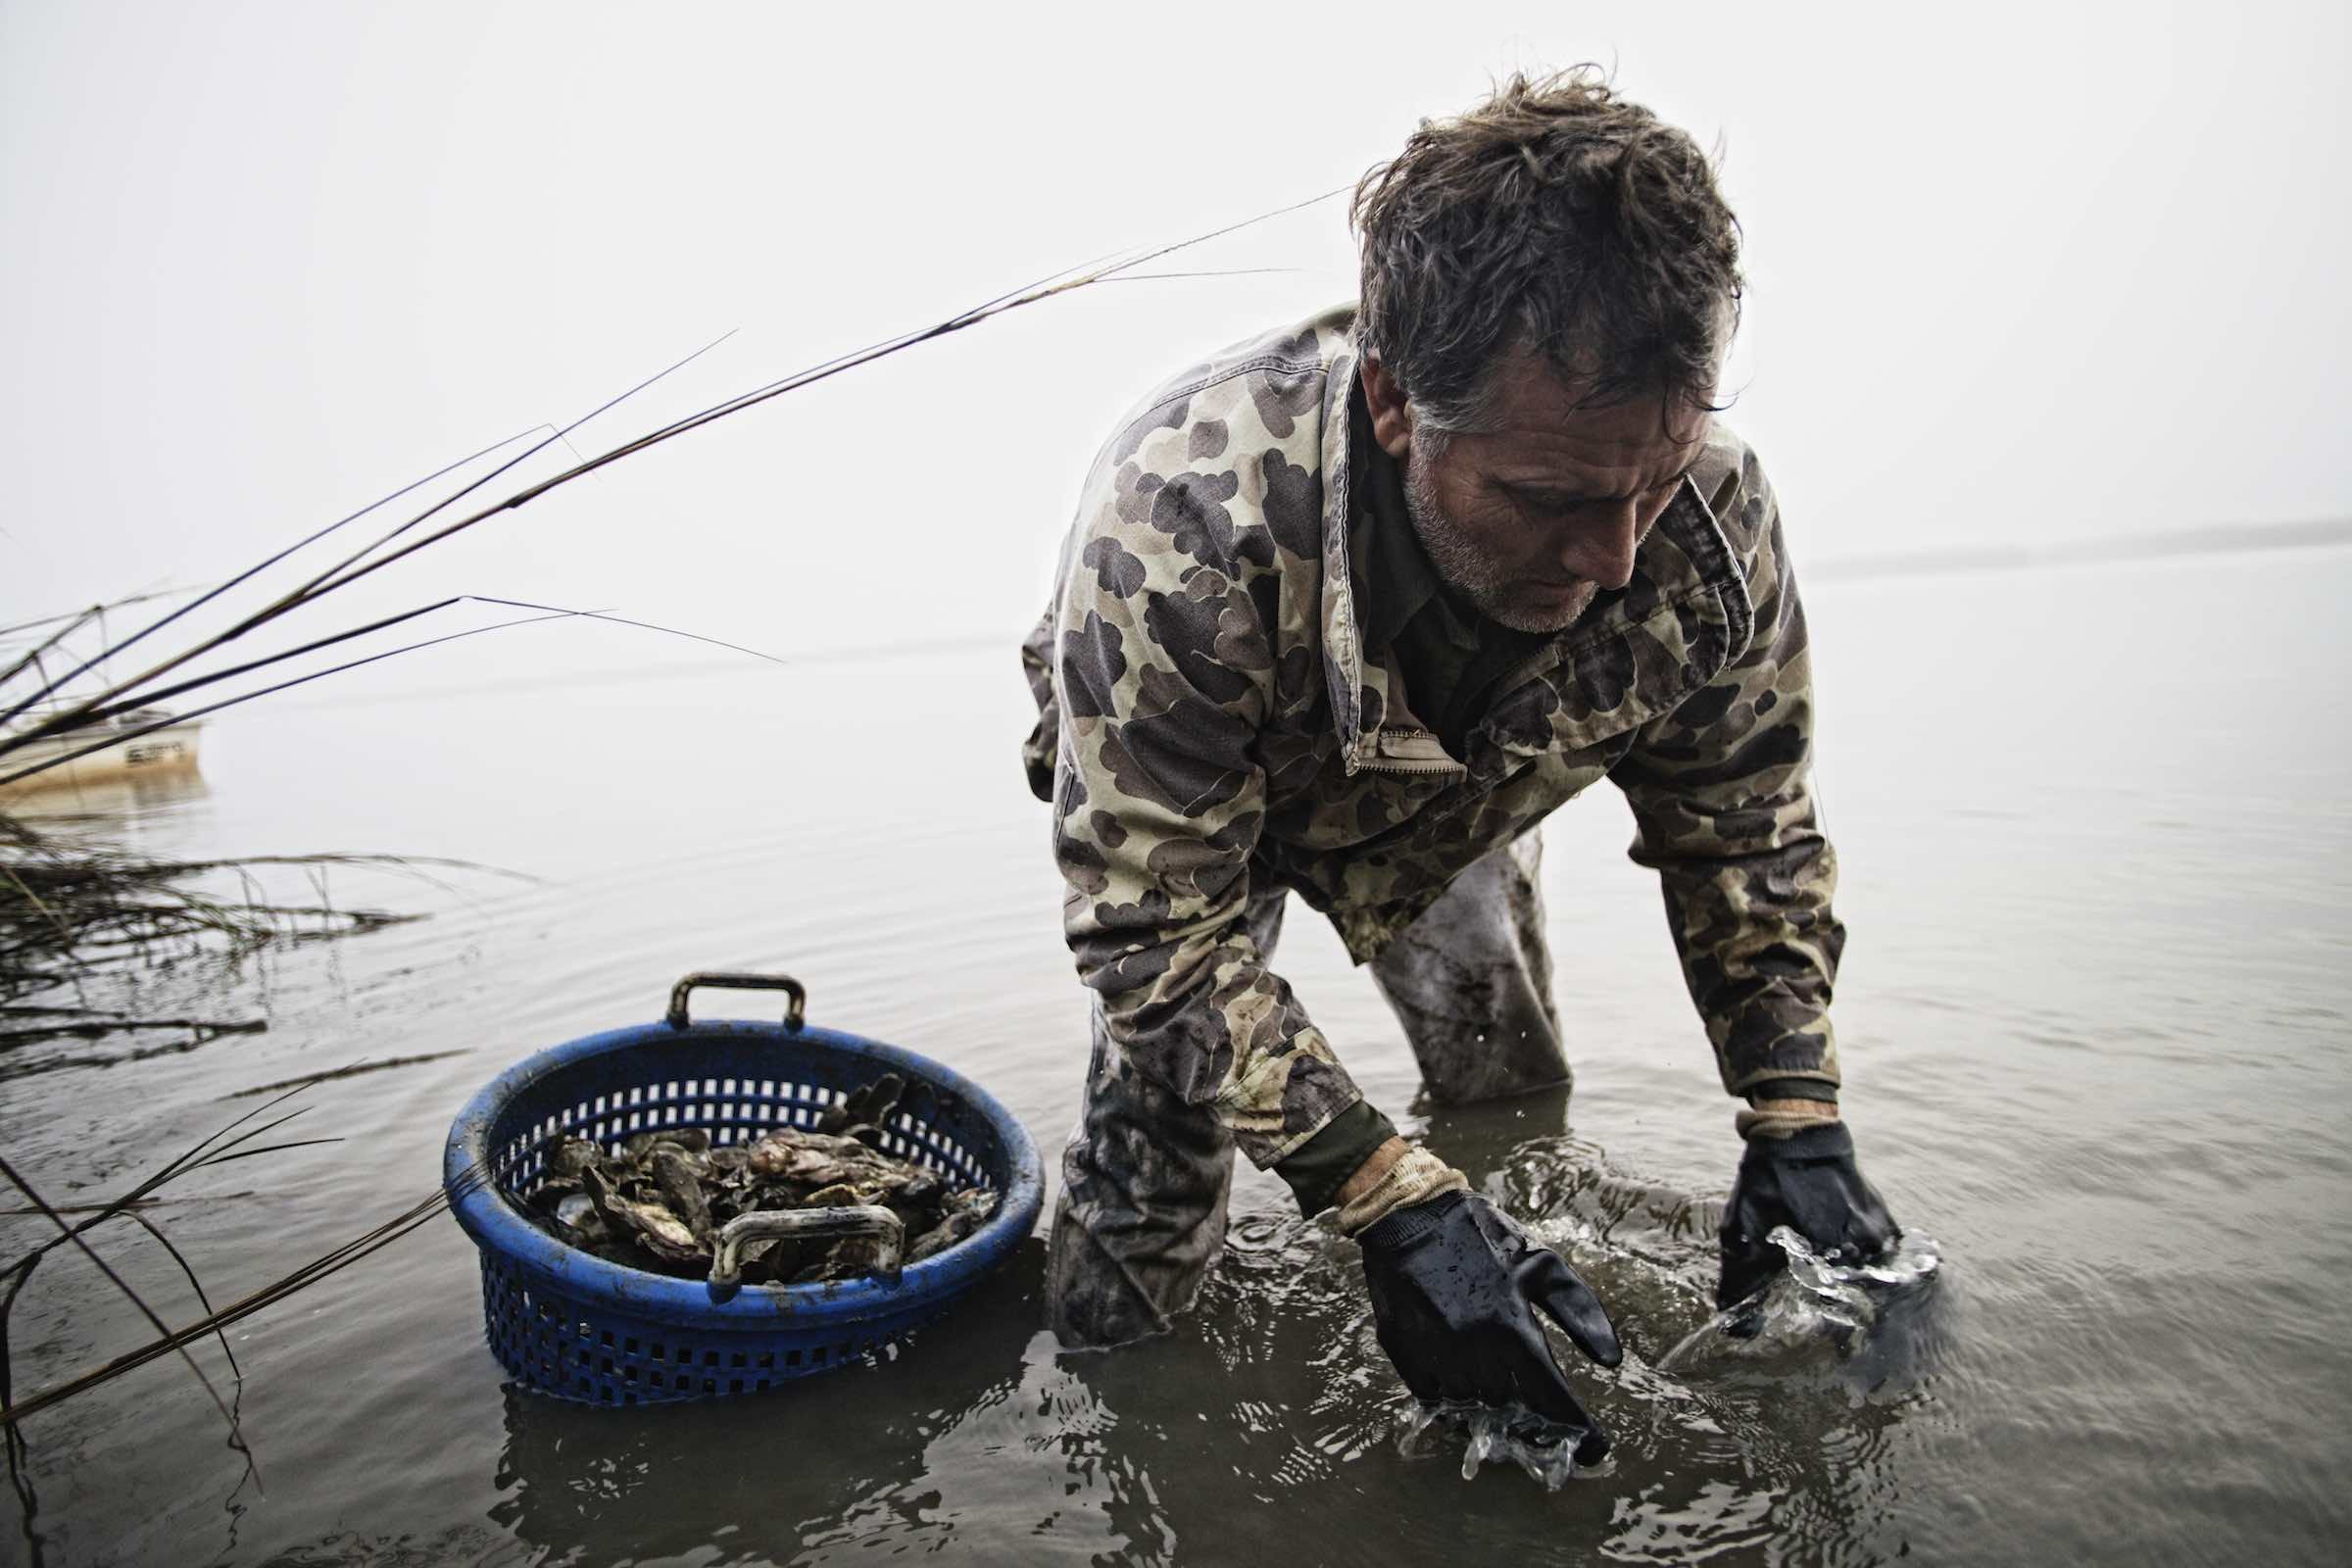 Jody Horton Photography - Fisherman and his basket of oysters in shallow water.